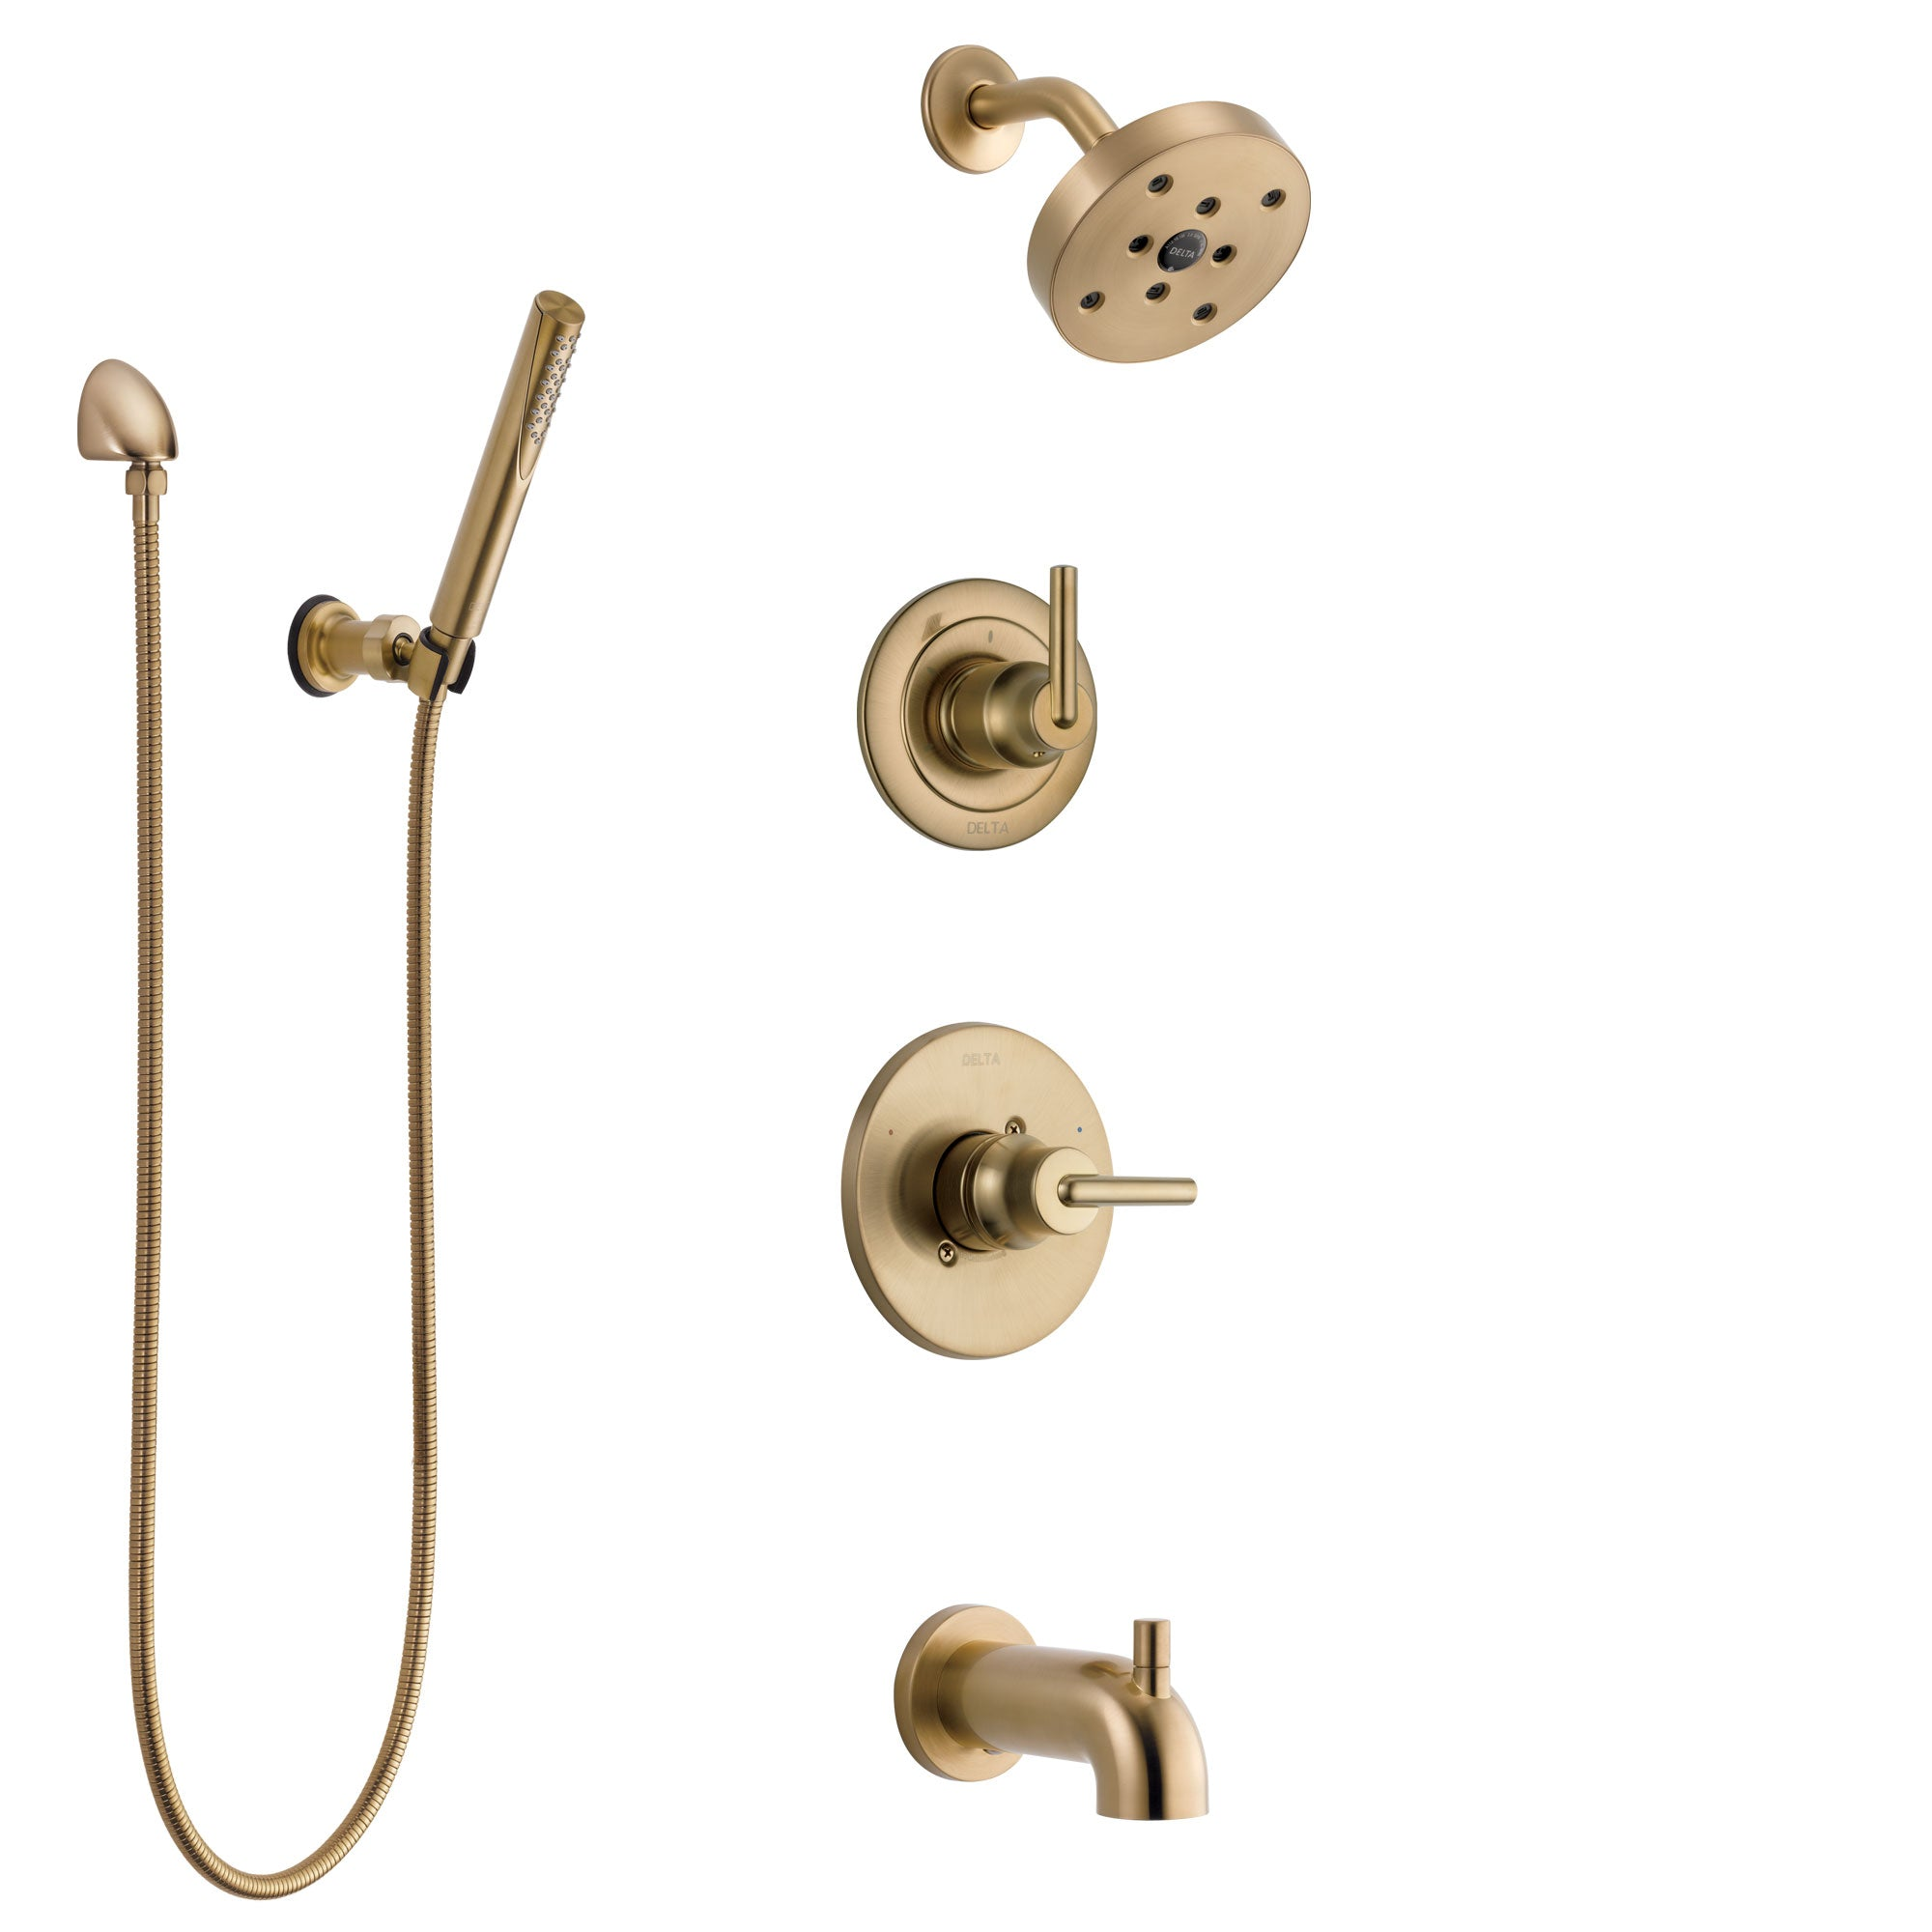 Delta Trinsic Champagne Bronze Tub and Shower System with Control Handle, 3-Setting Diverter, Showerhead, and Hand Shower with Wall Bracket SS14459CZ3